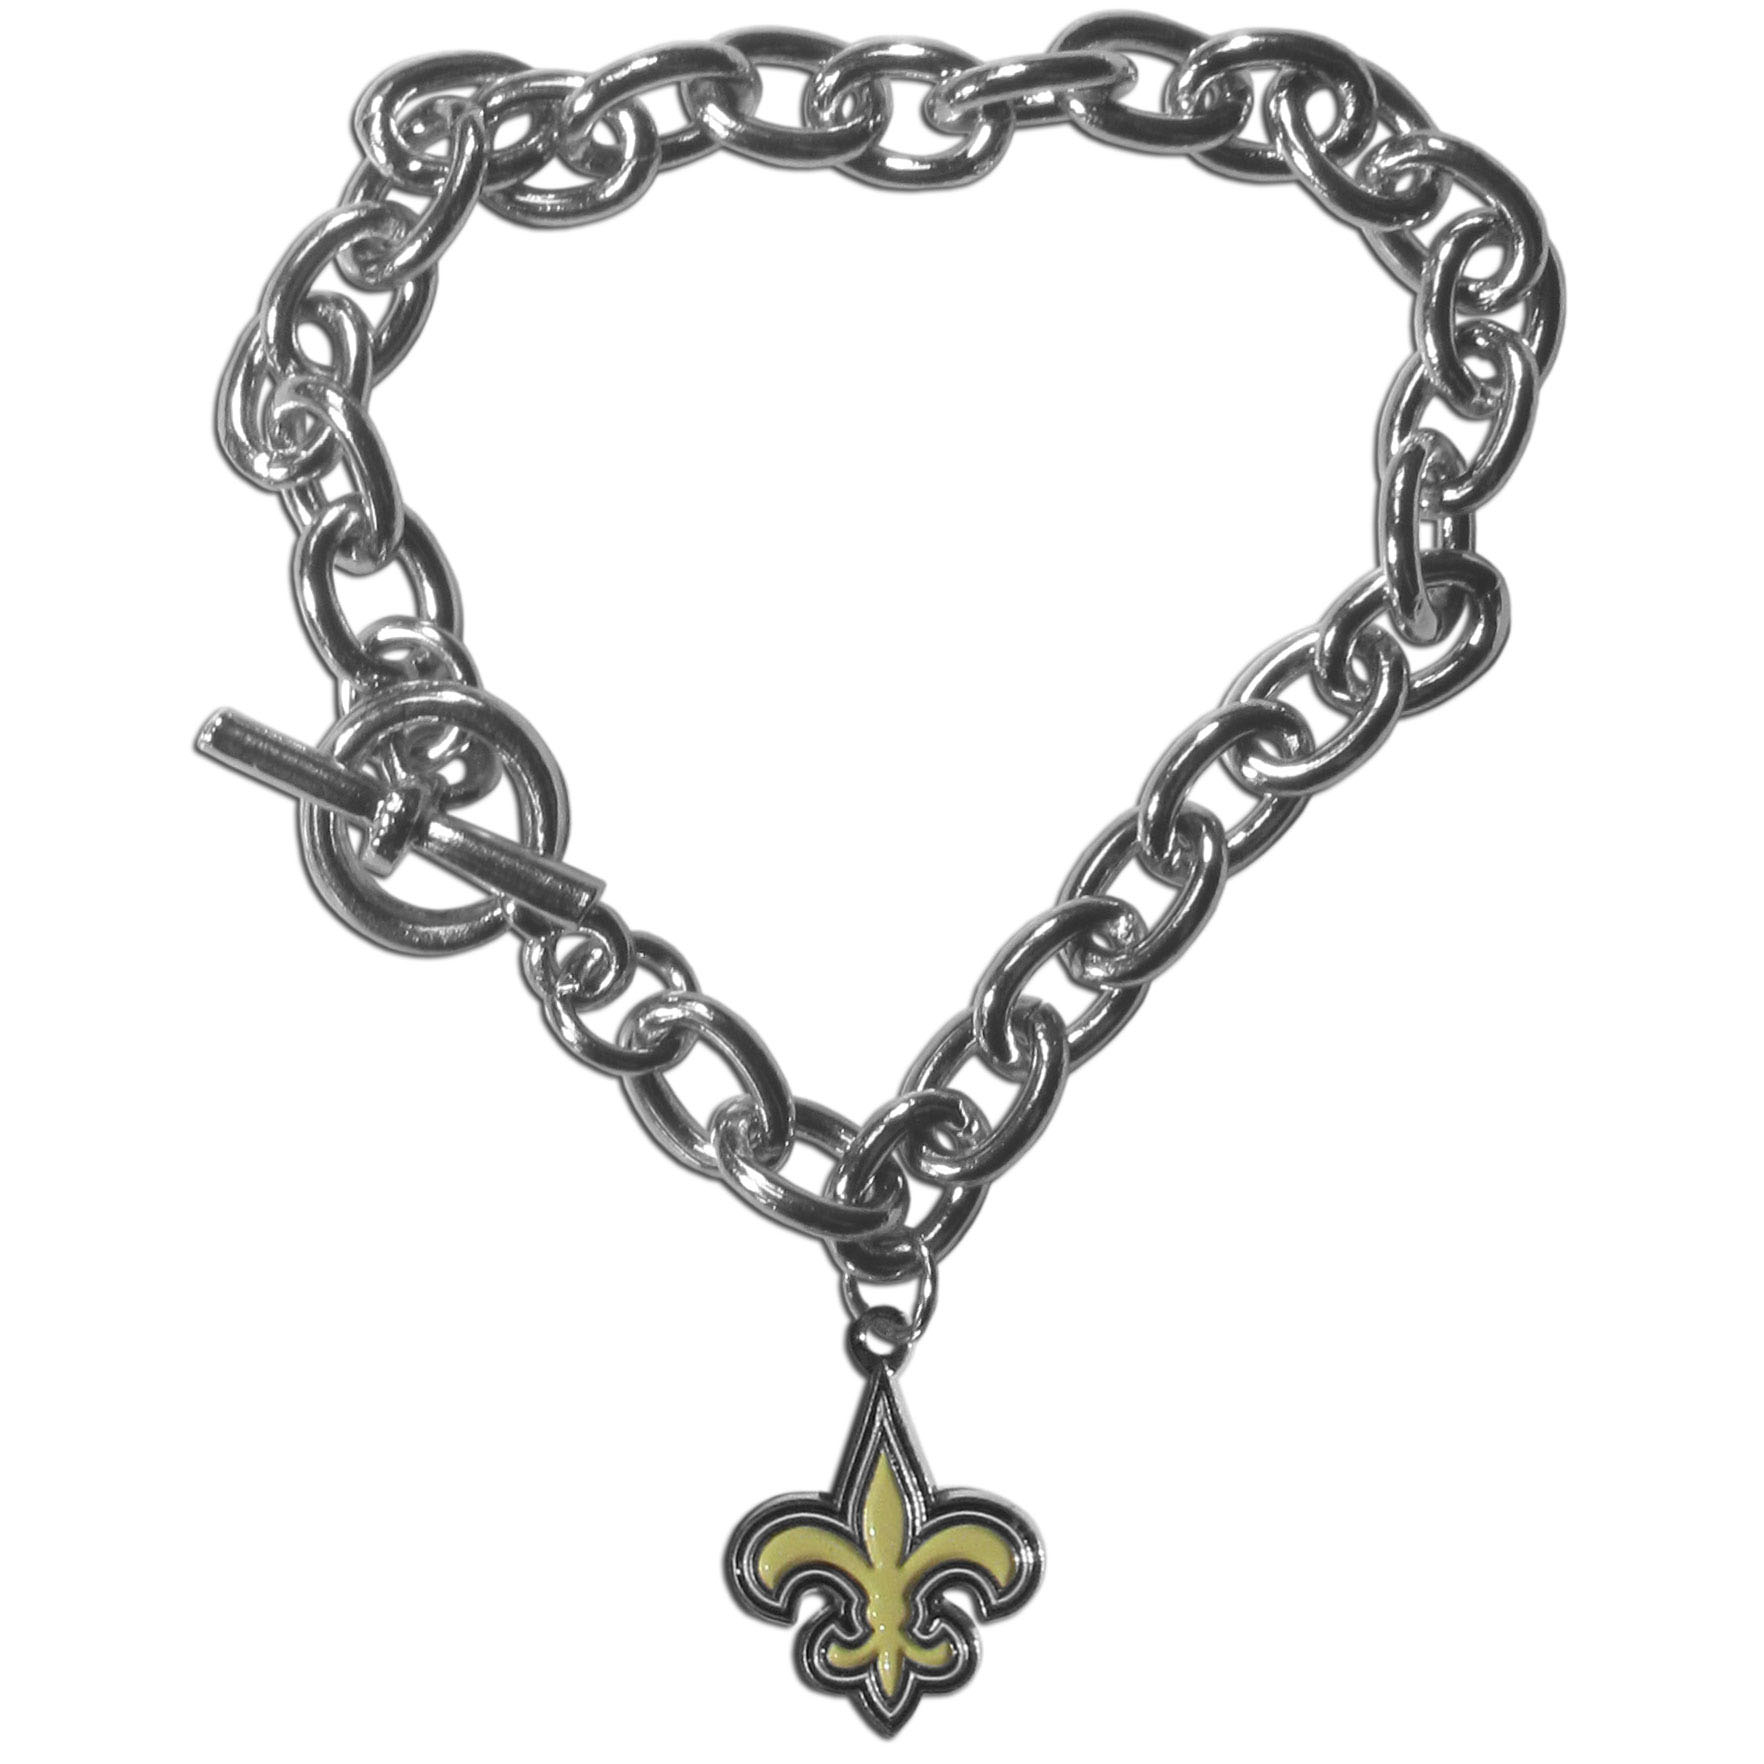 New Orleans Saints Charm Chain Bracelet - Our classic single charm bracelet is a great way to show off your team pride! The 7.5 inch large link chain features a high polish New Orleans Saints charm and features a toggle clasp which makes it super easy to take on and off.